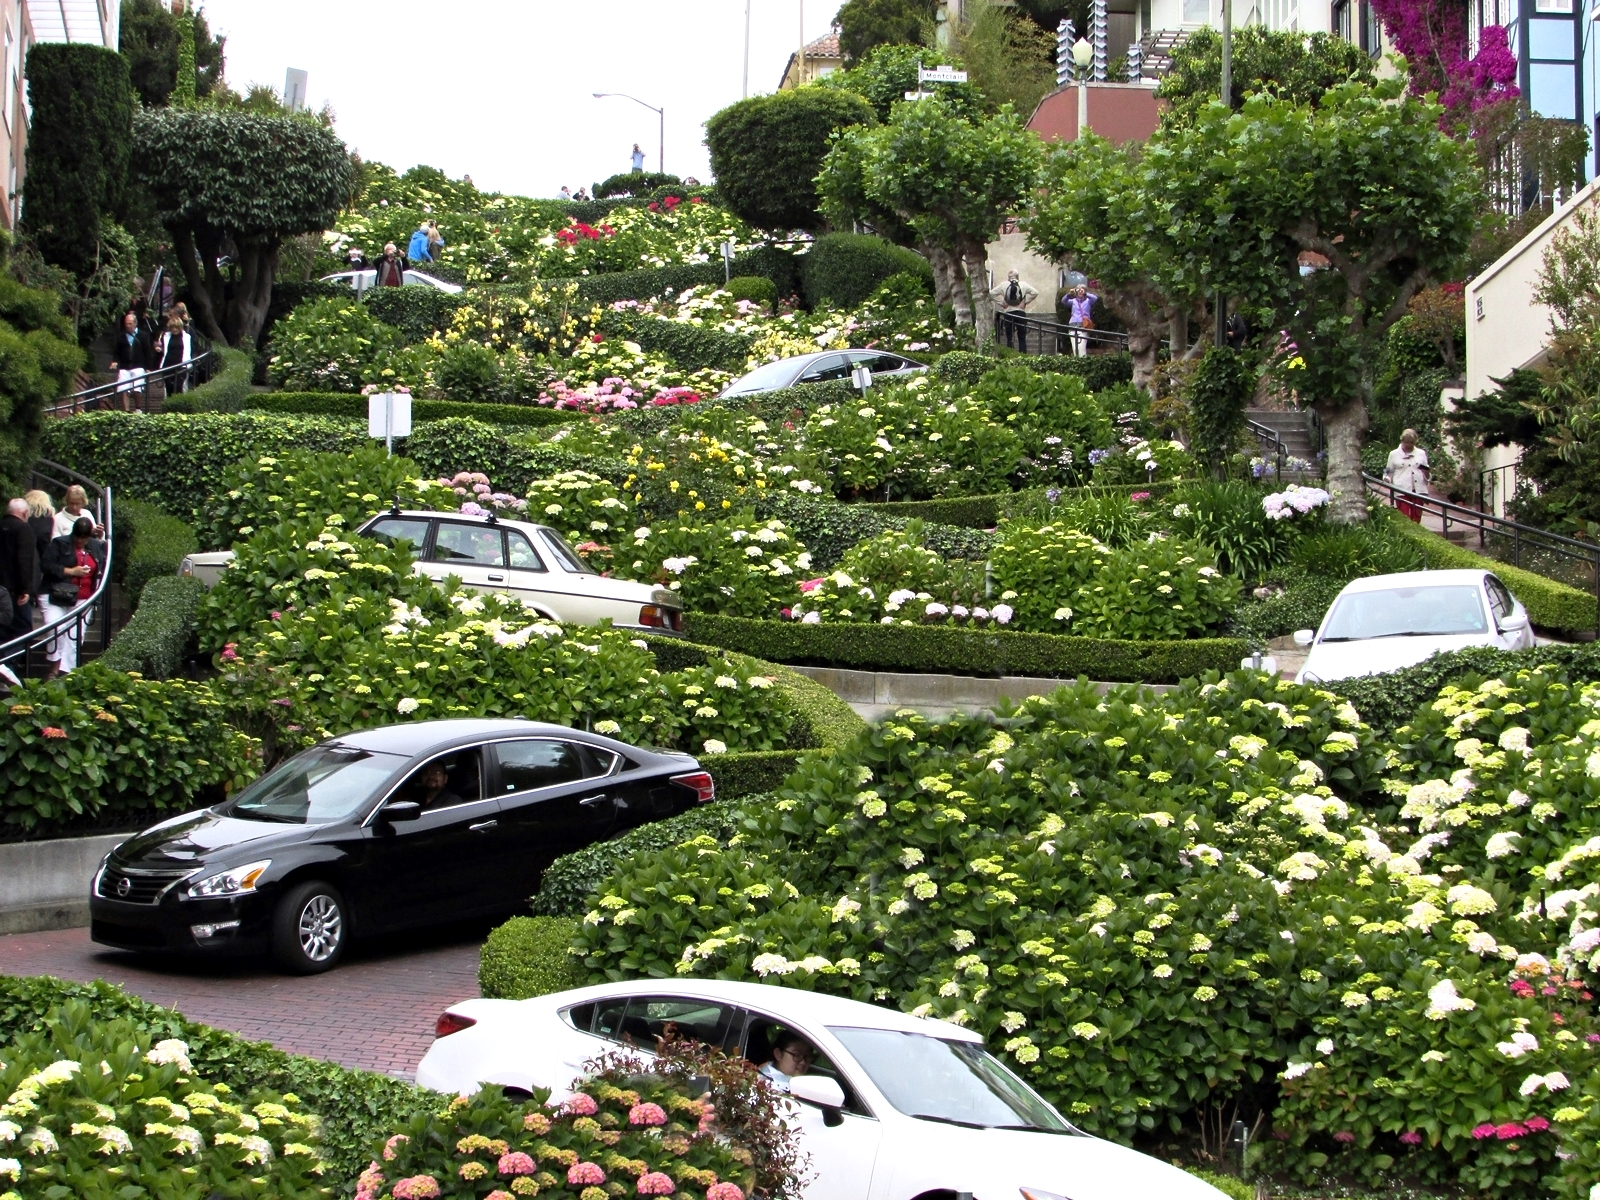 San Francisco - Lombard Street - USA Rundreise - Roadtrip - Reisebericht - Travel Diary - Fashionladyloves